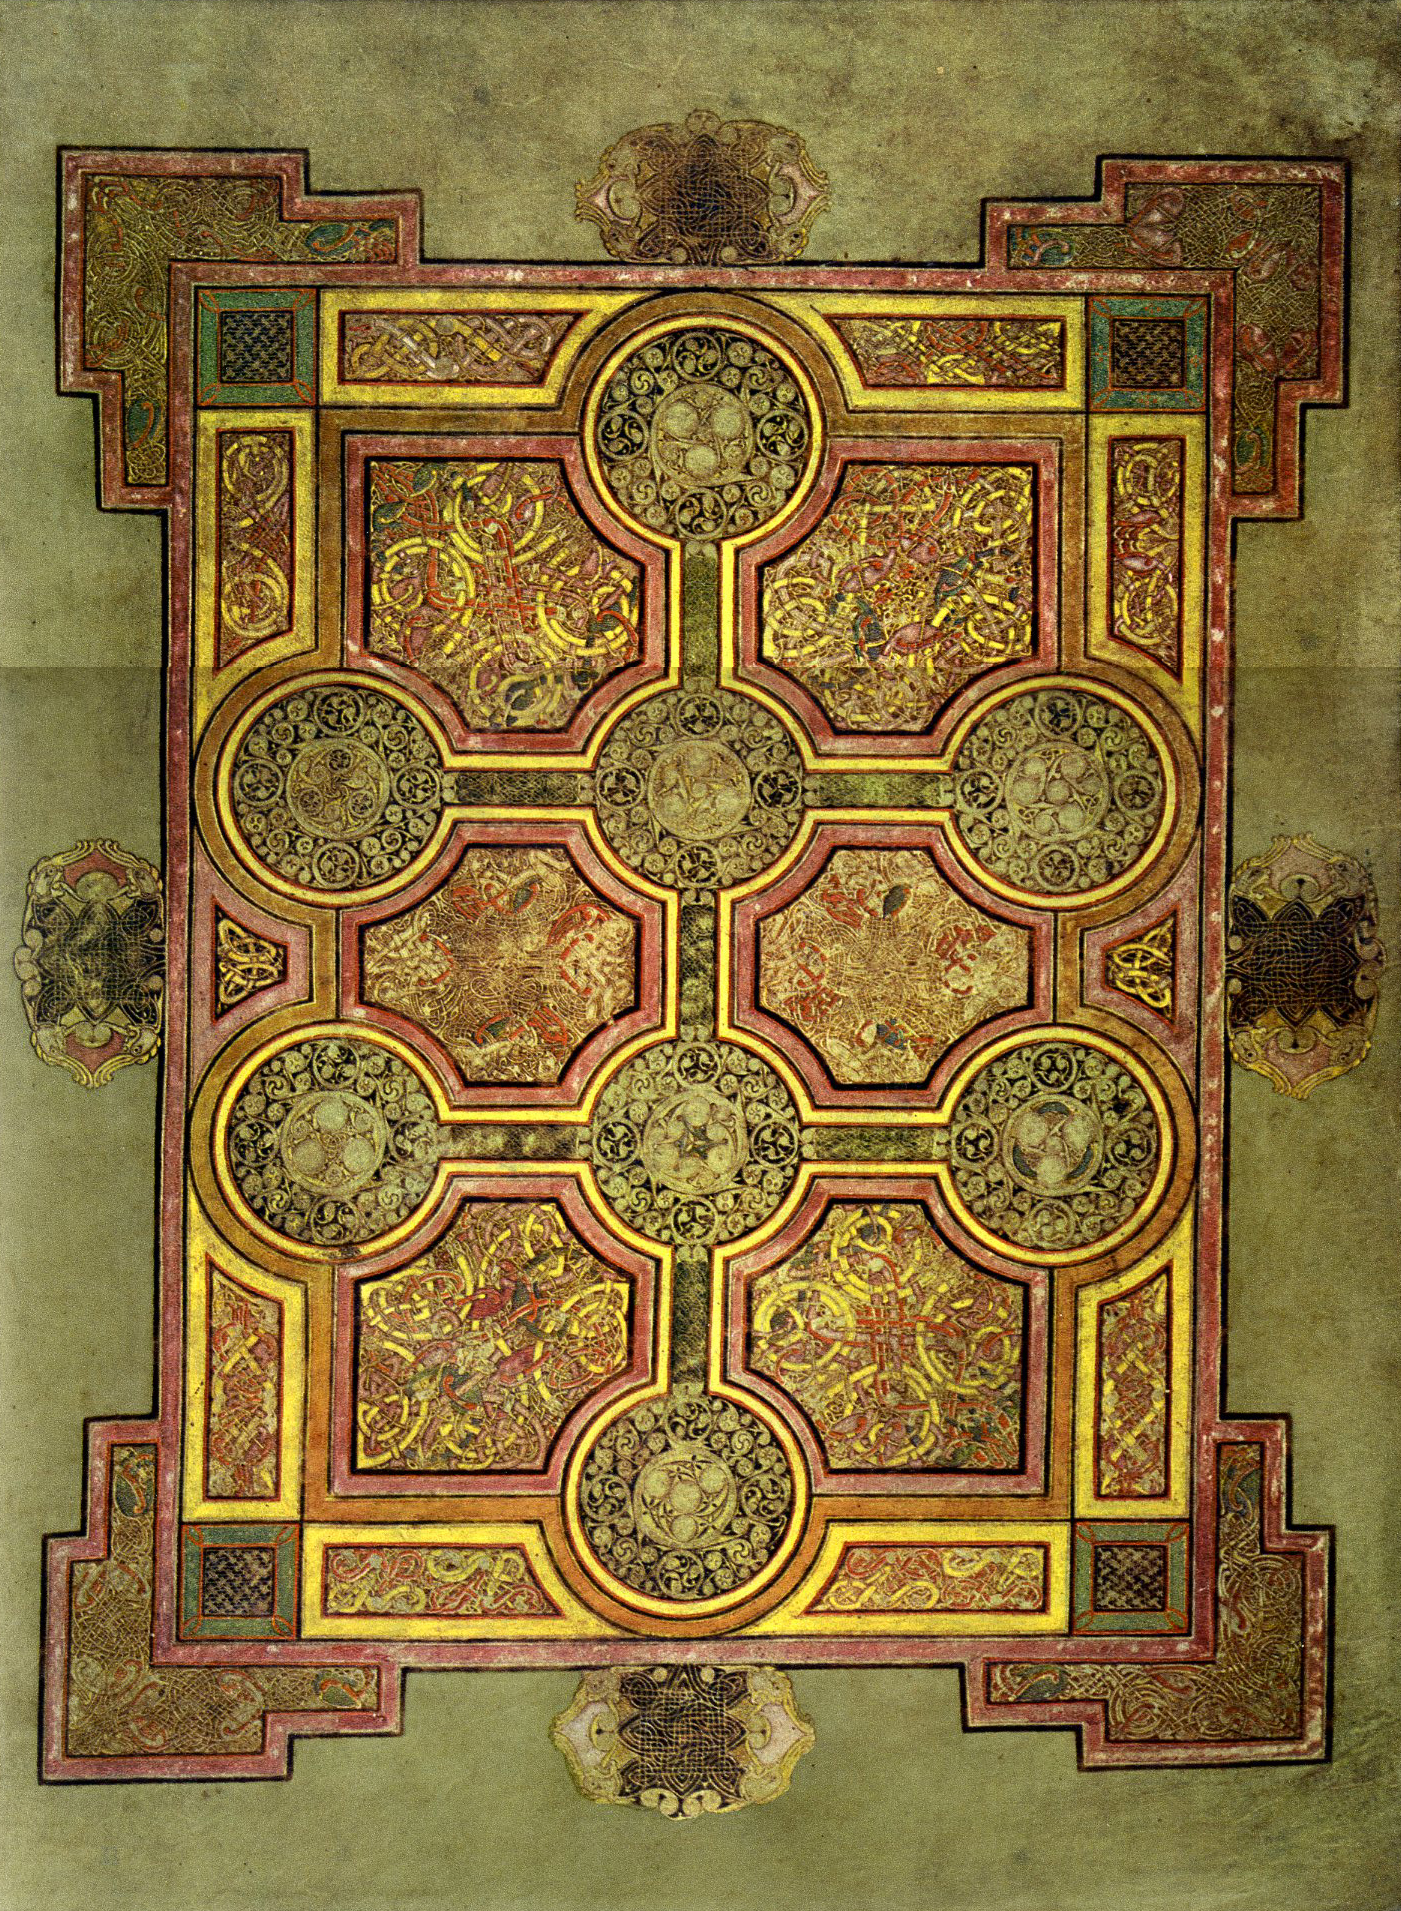 ChiRho Page from the Book of Kells The Word Made Flesh